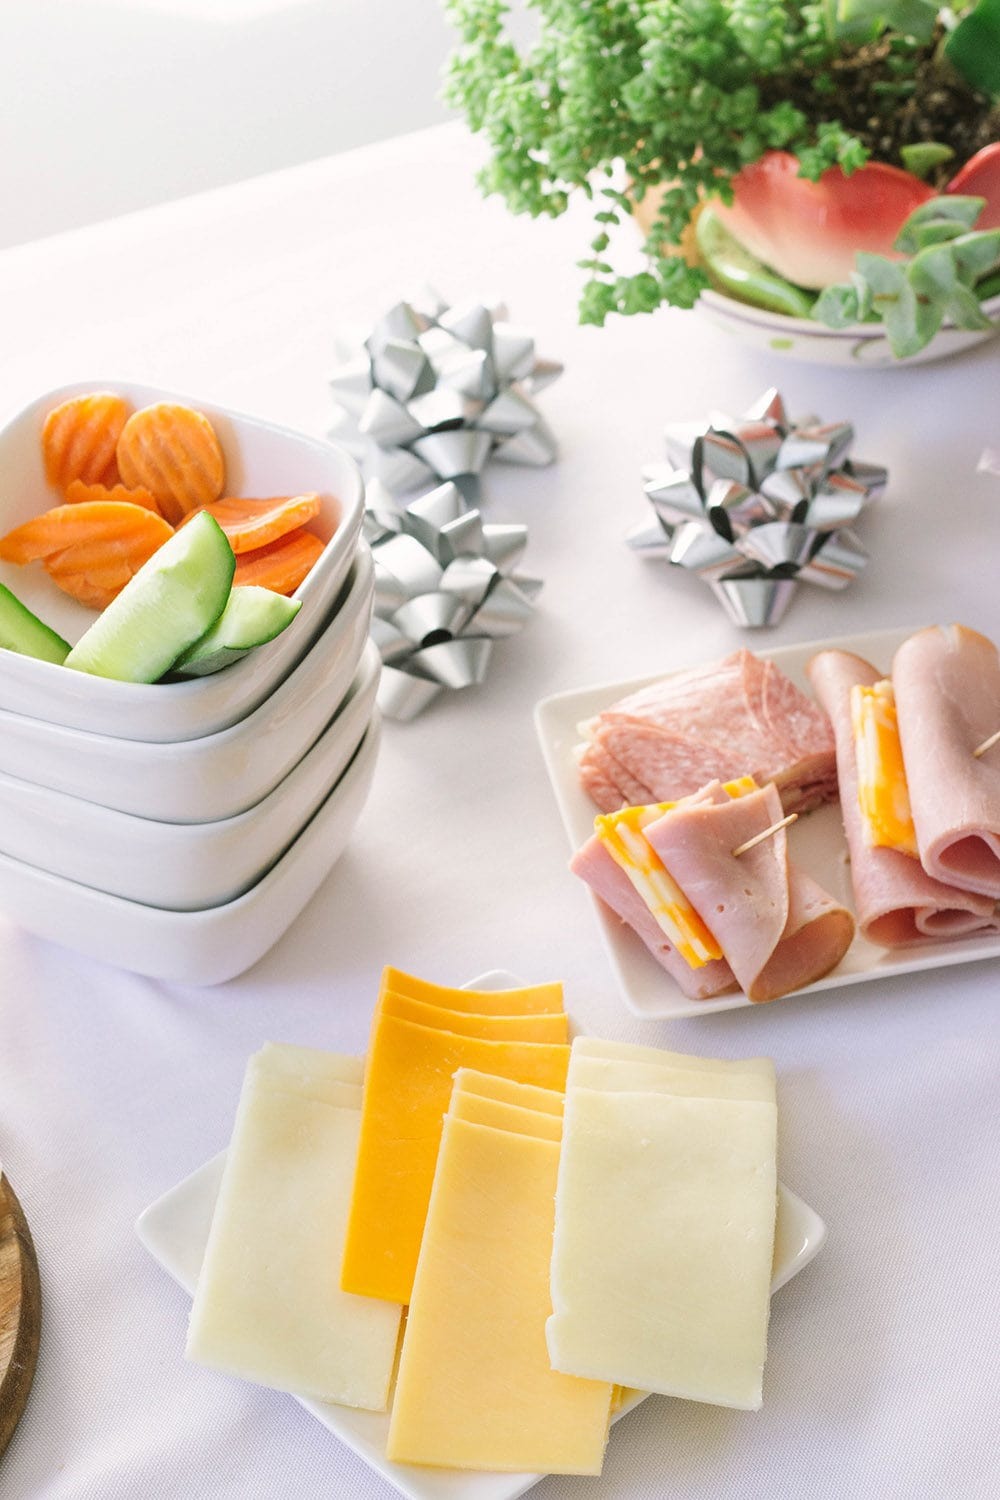 Cheeses on a plate, meat, and veggies on a table